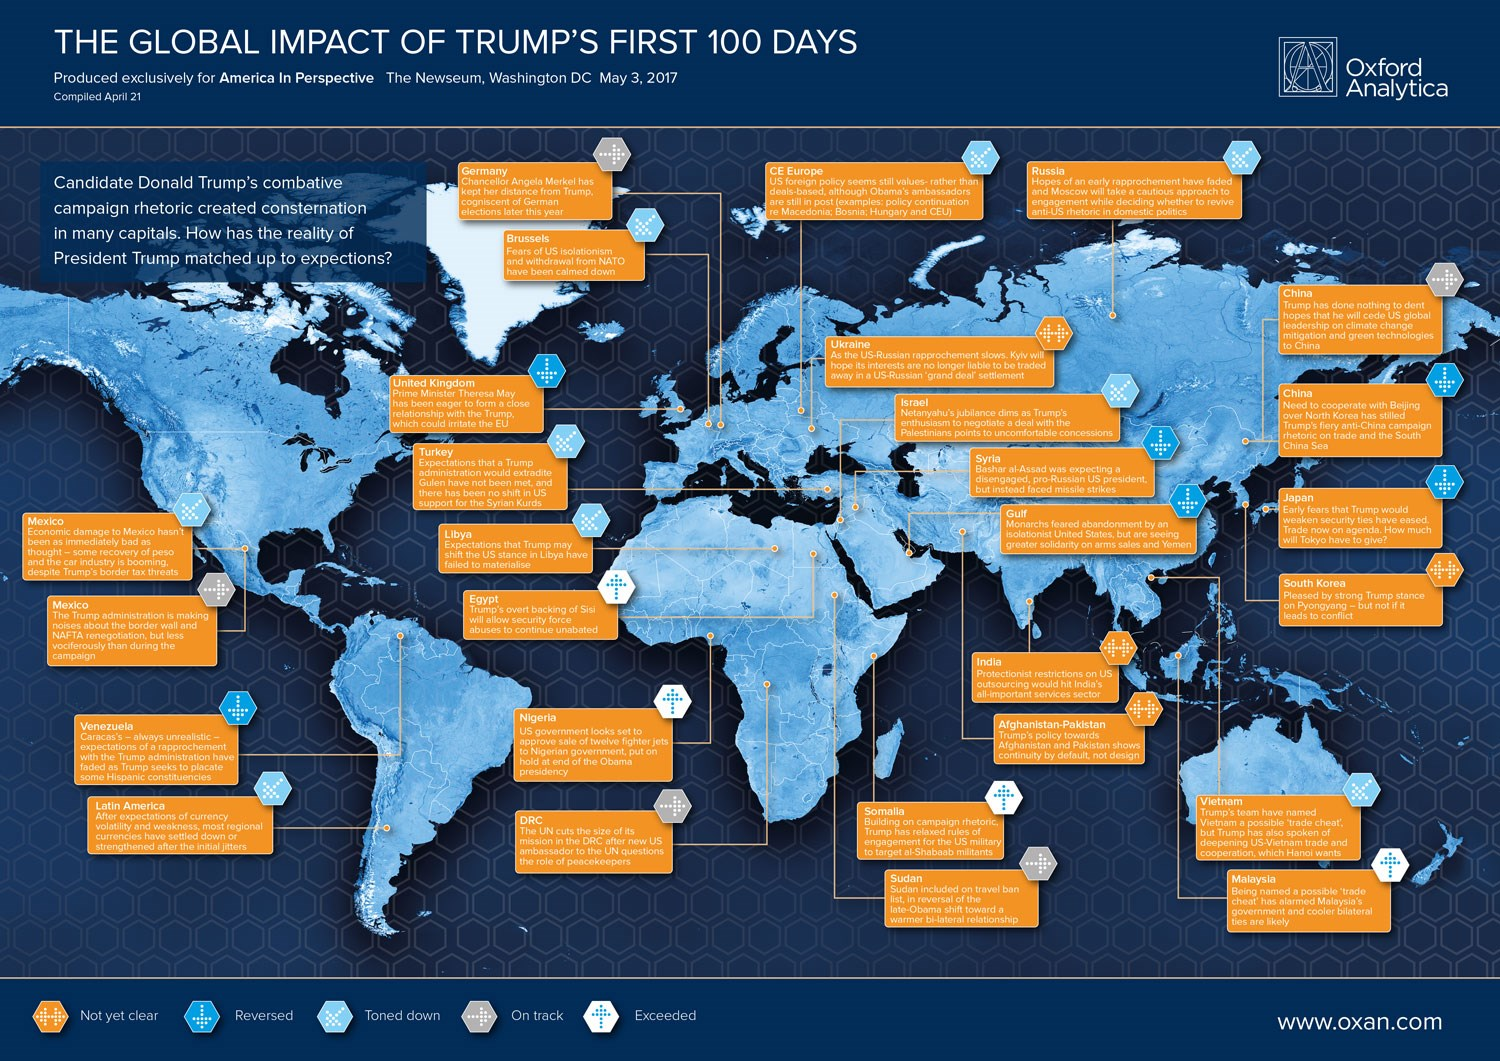 Return to American in Perspective event